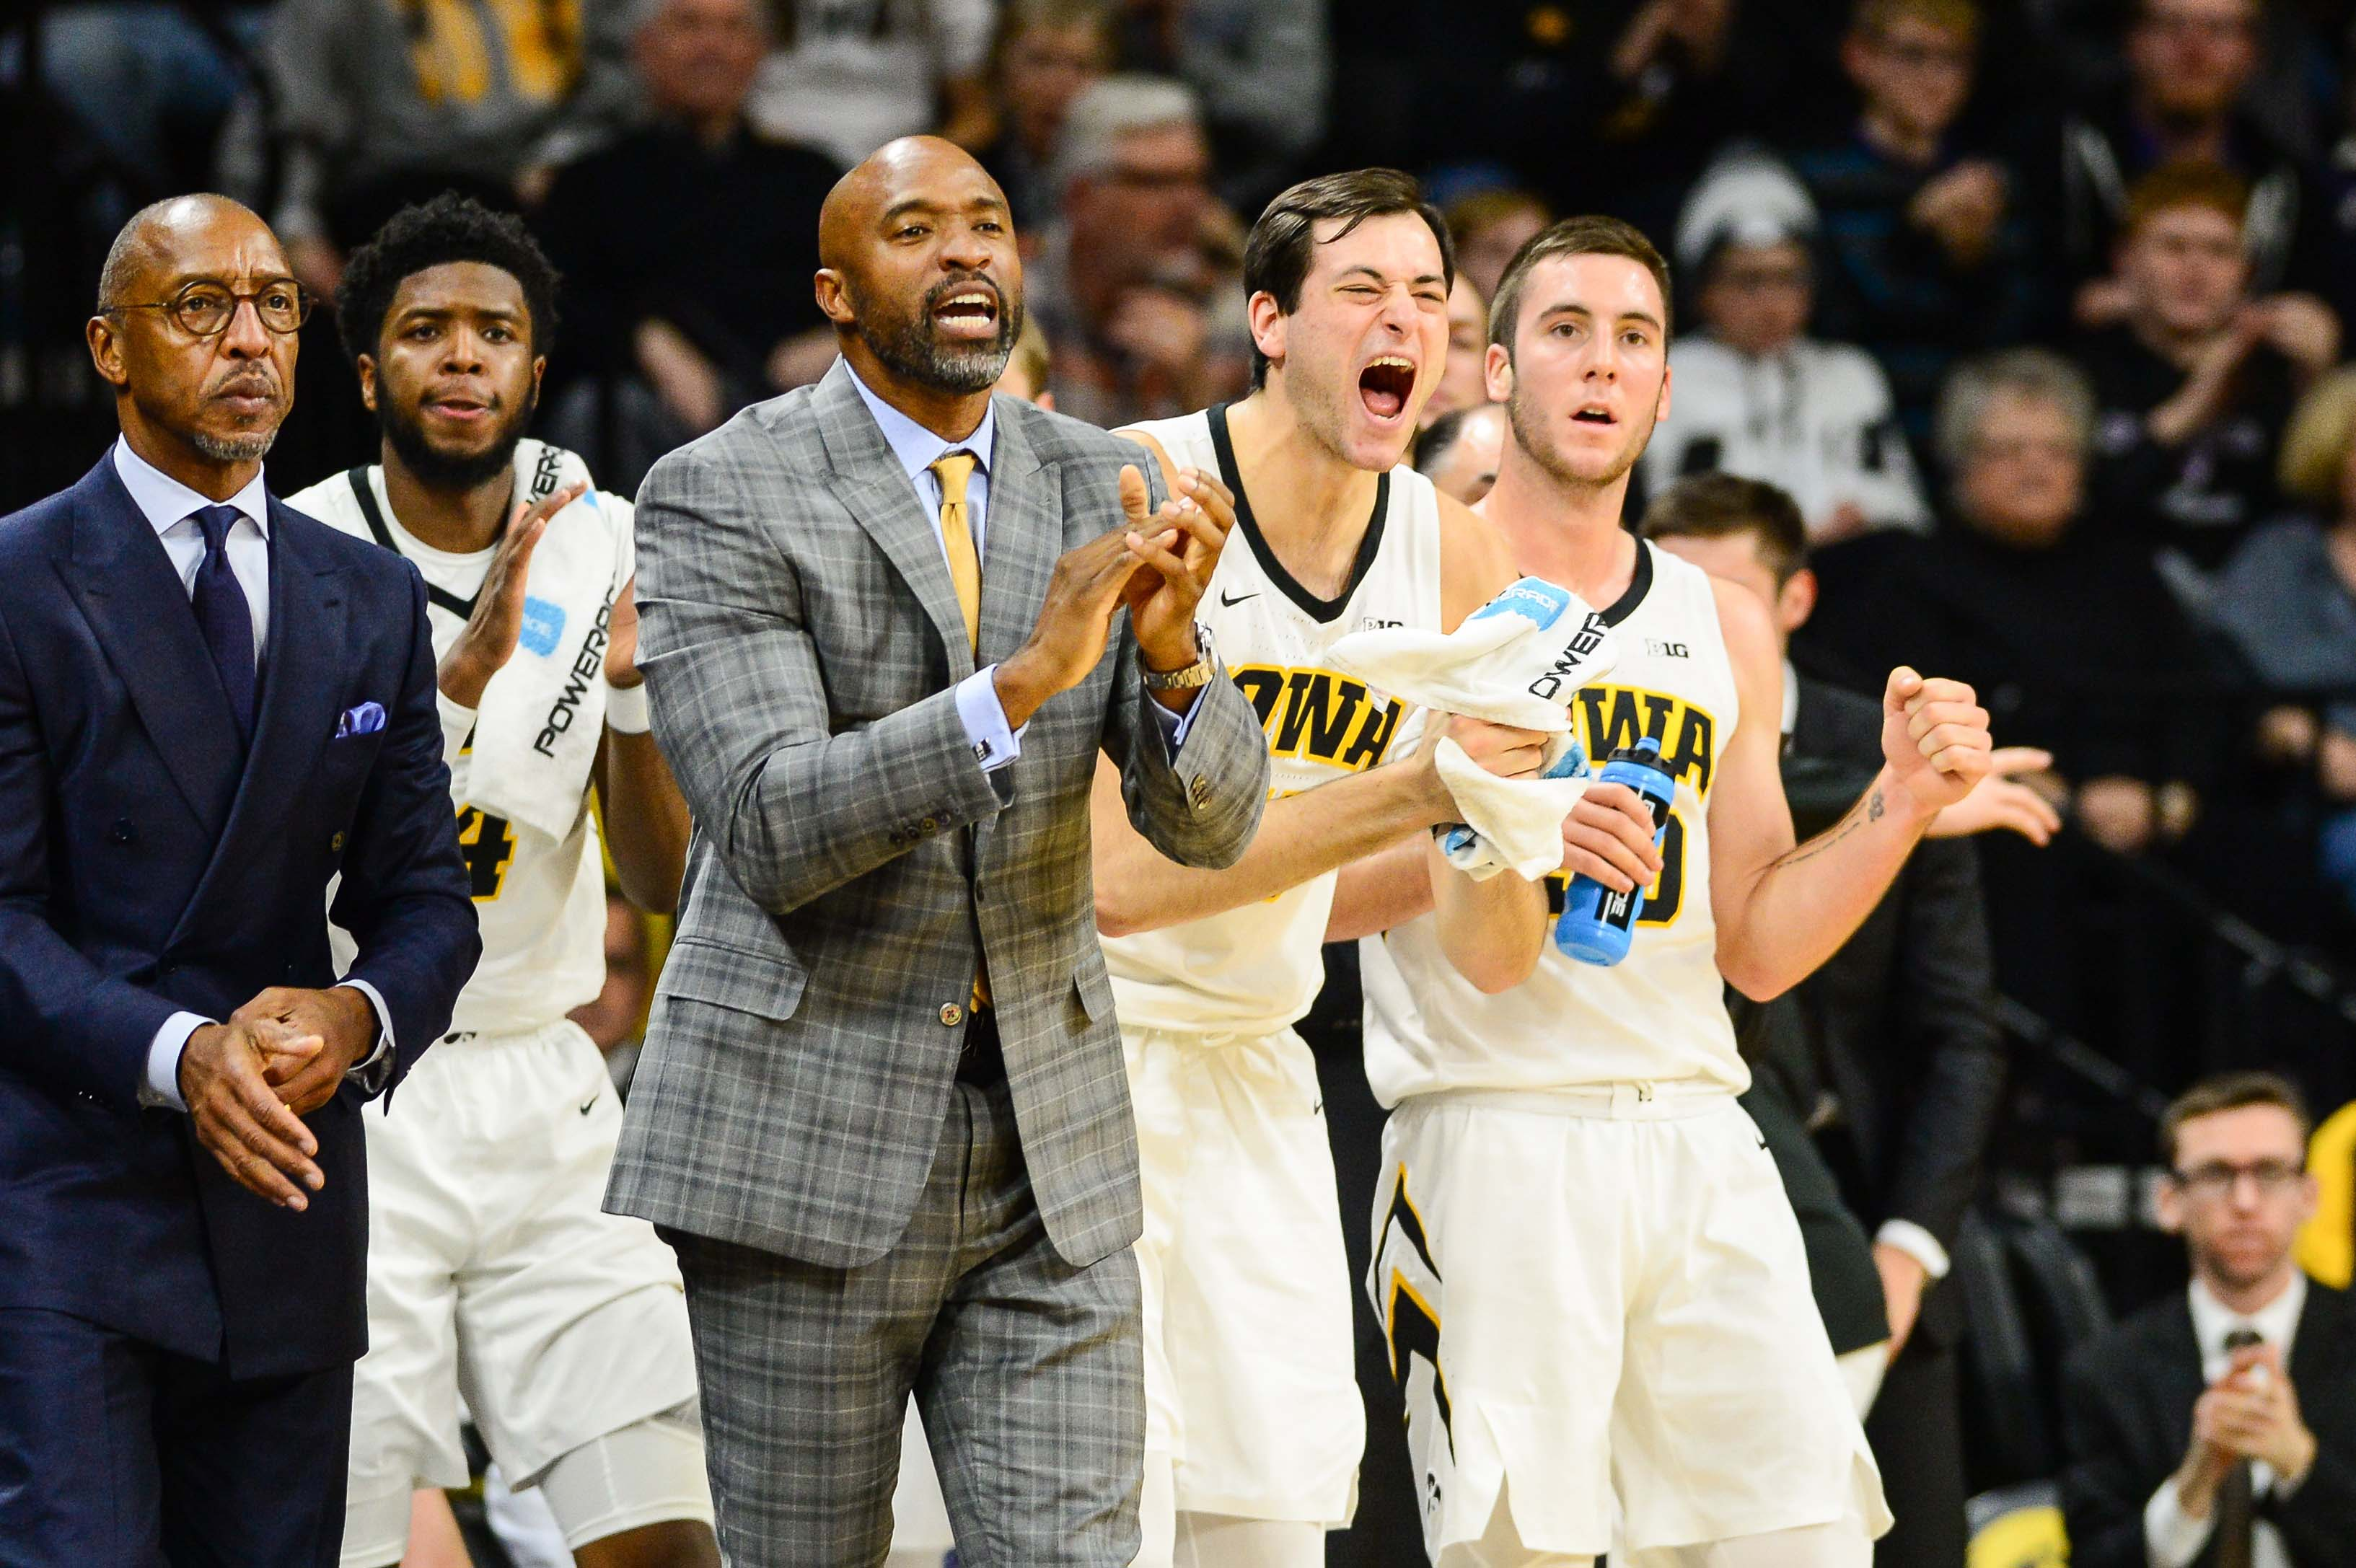 The Iowa bench celebrates during Tuesday's wn over Pitt at Carver-Hawkeye Arena.